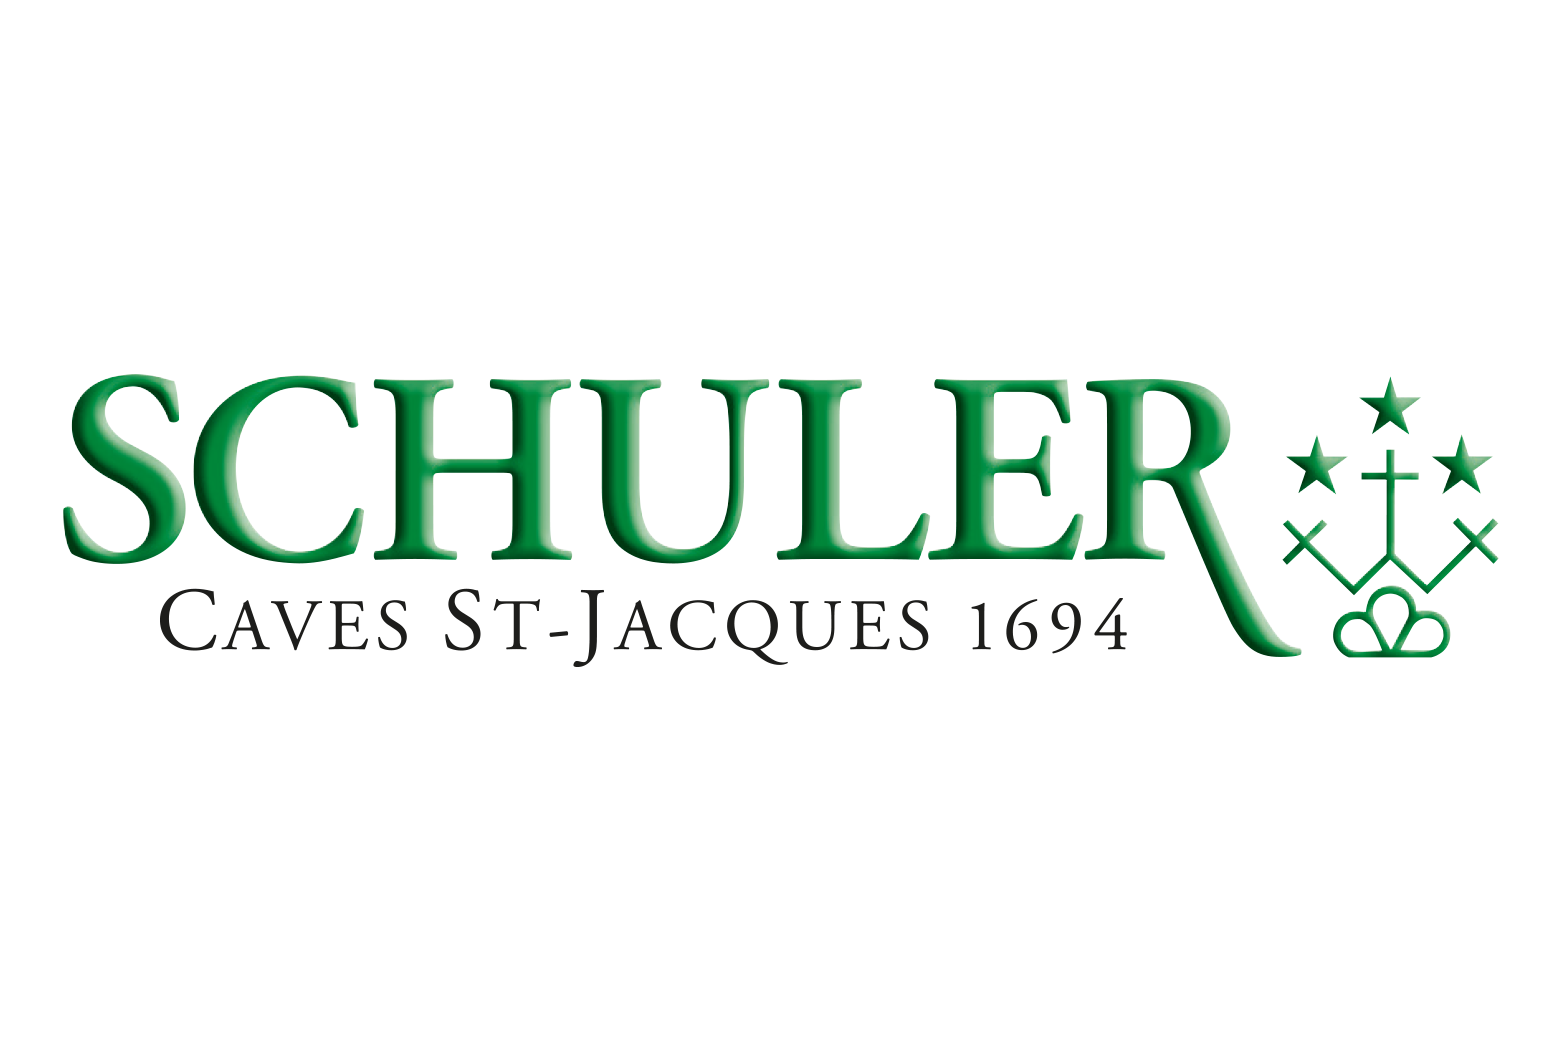 Schuler Caves St-Jacques